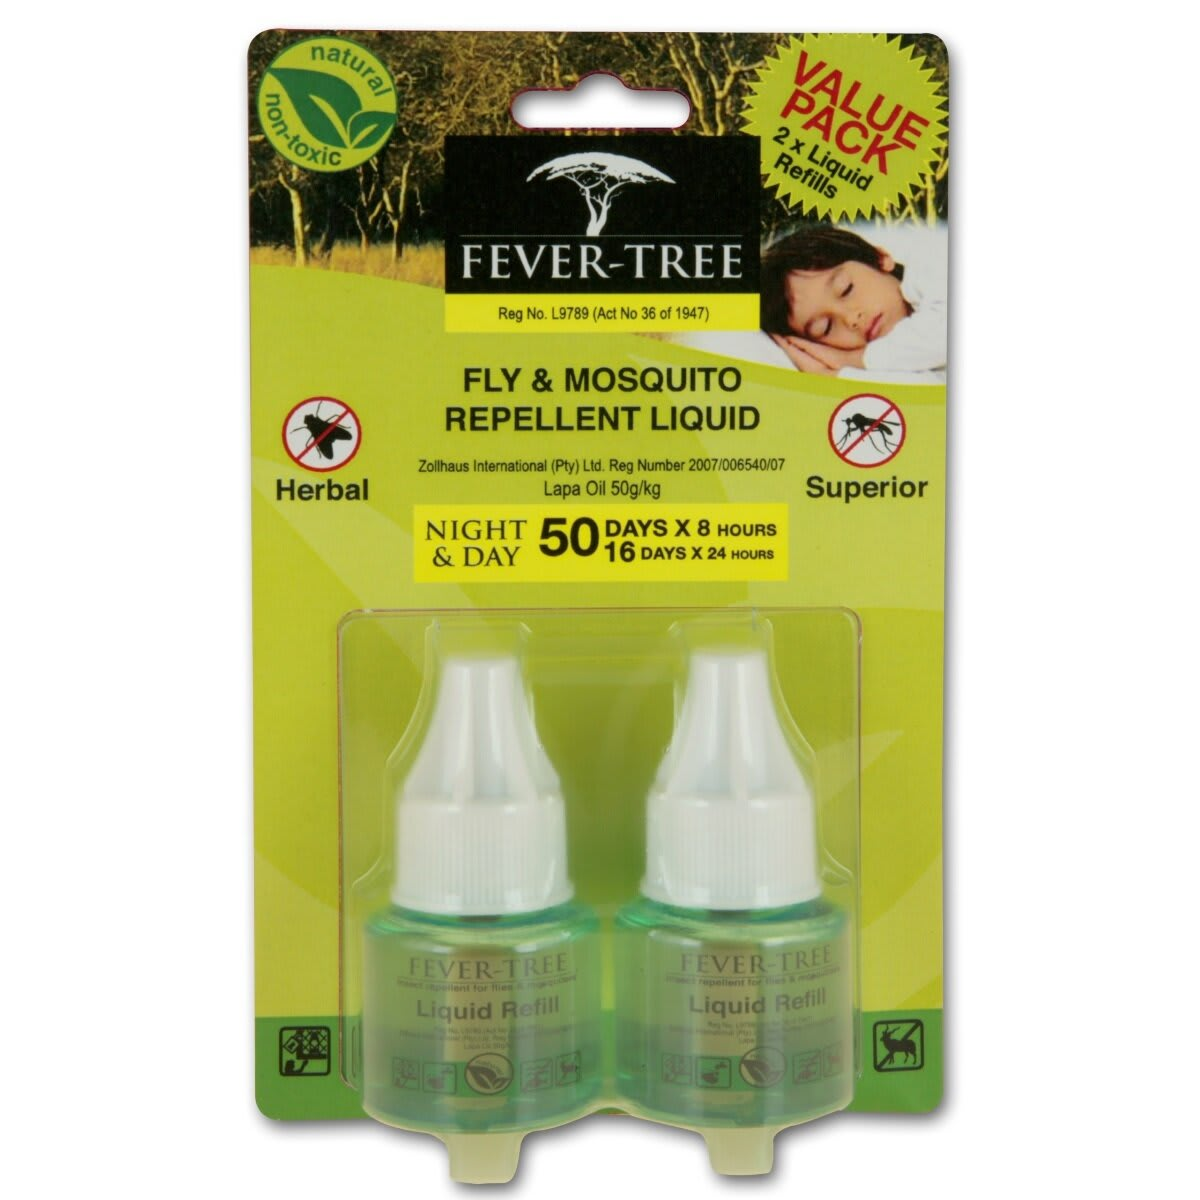 Fever Tree liquid refills Value Pack